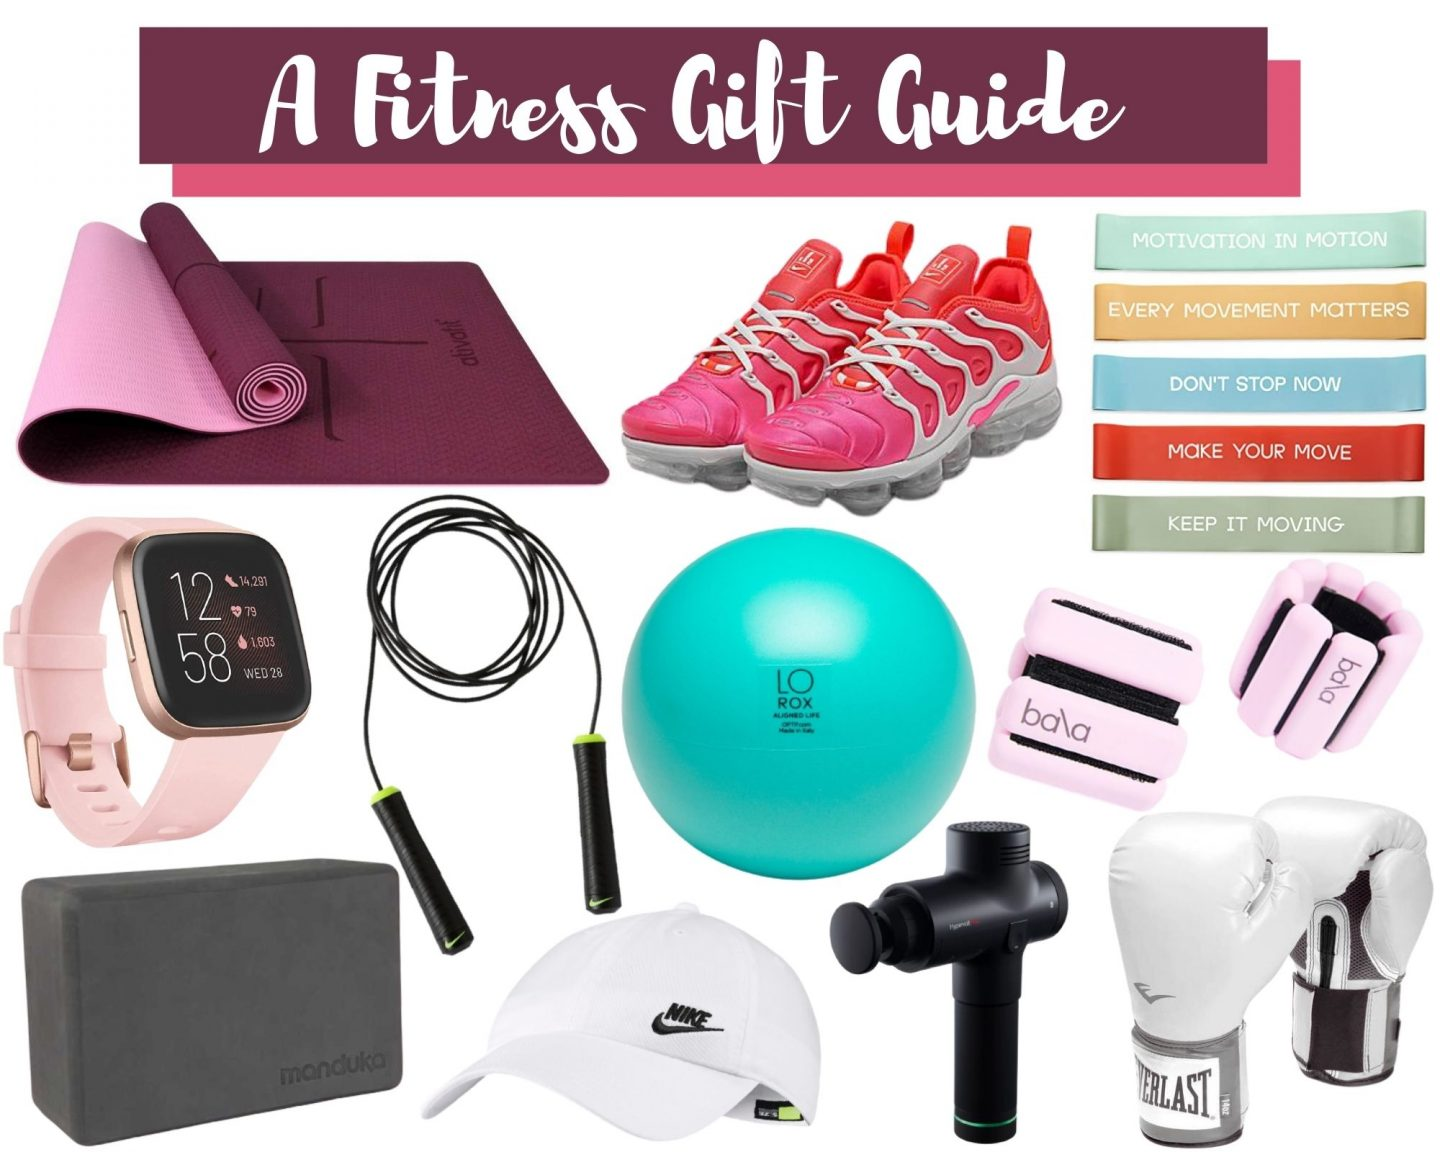 A Fitness Gift Guide!